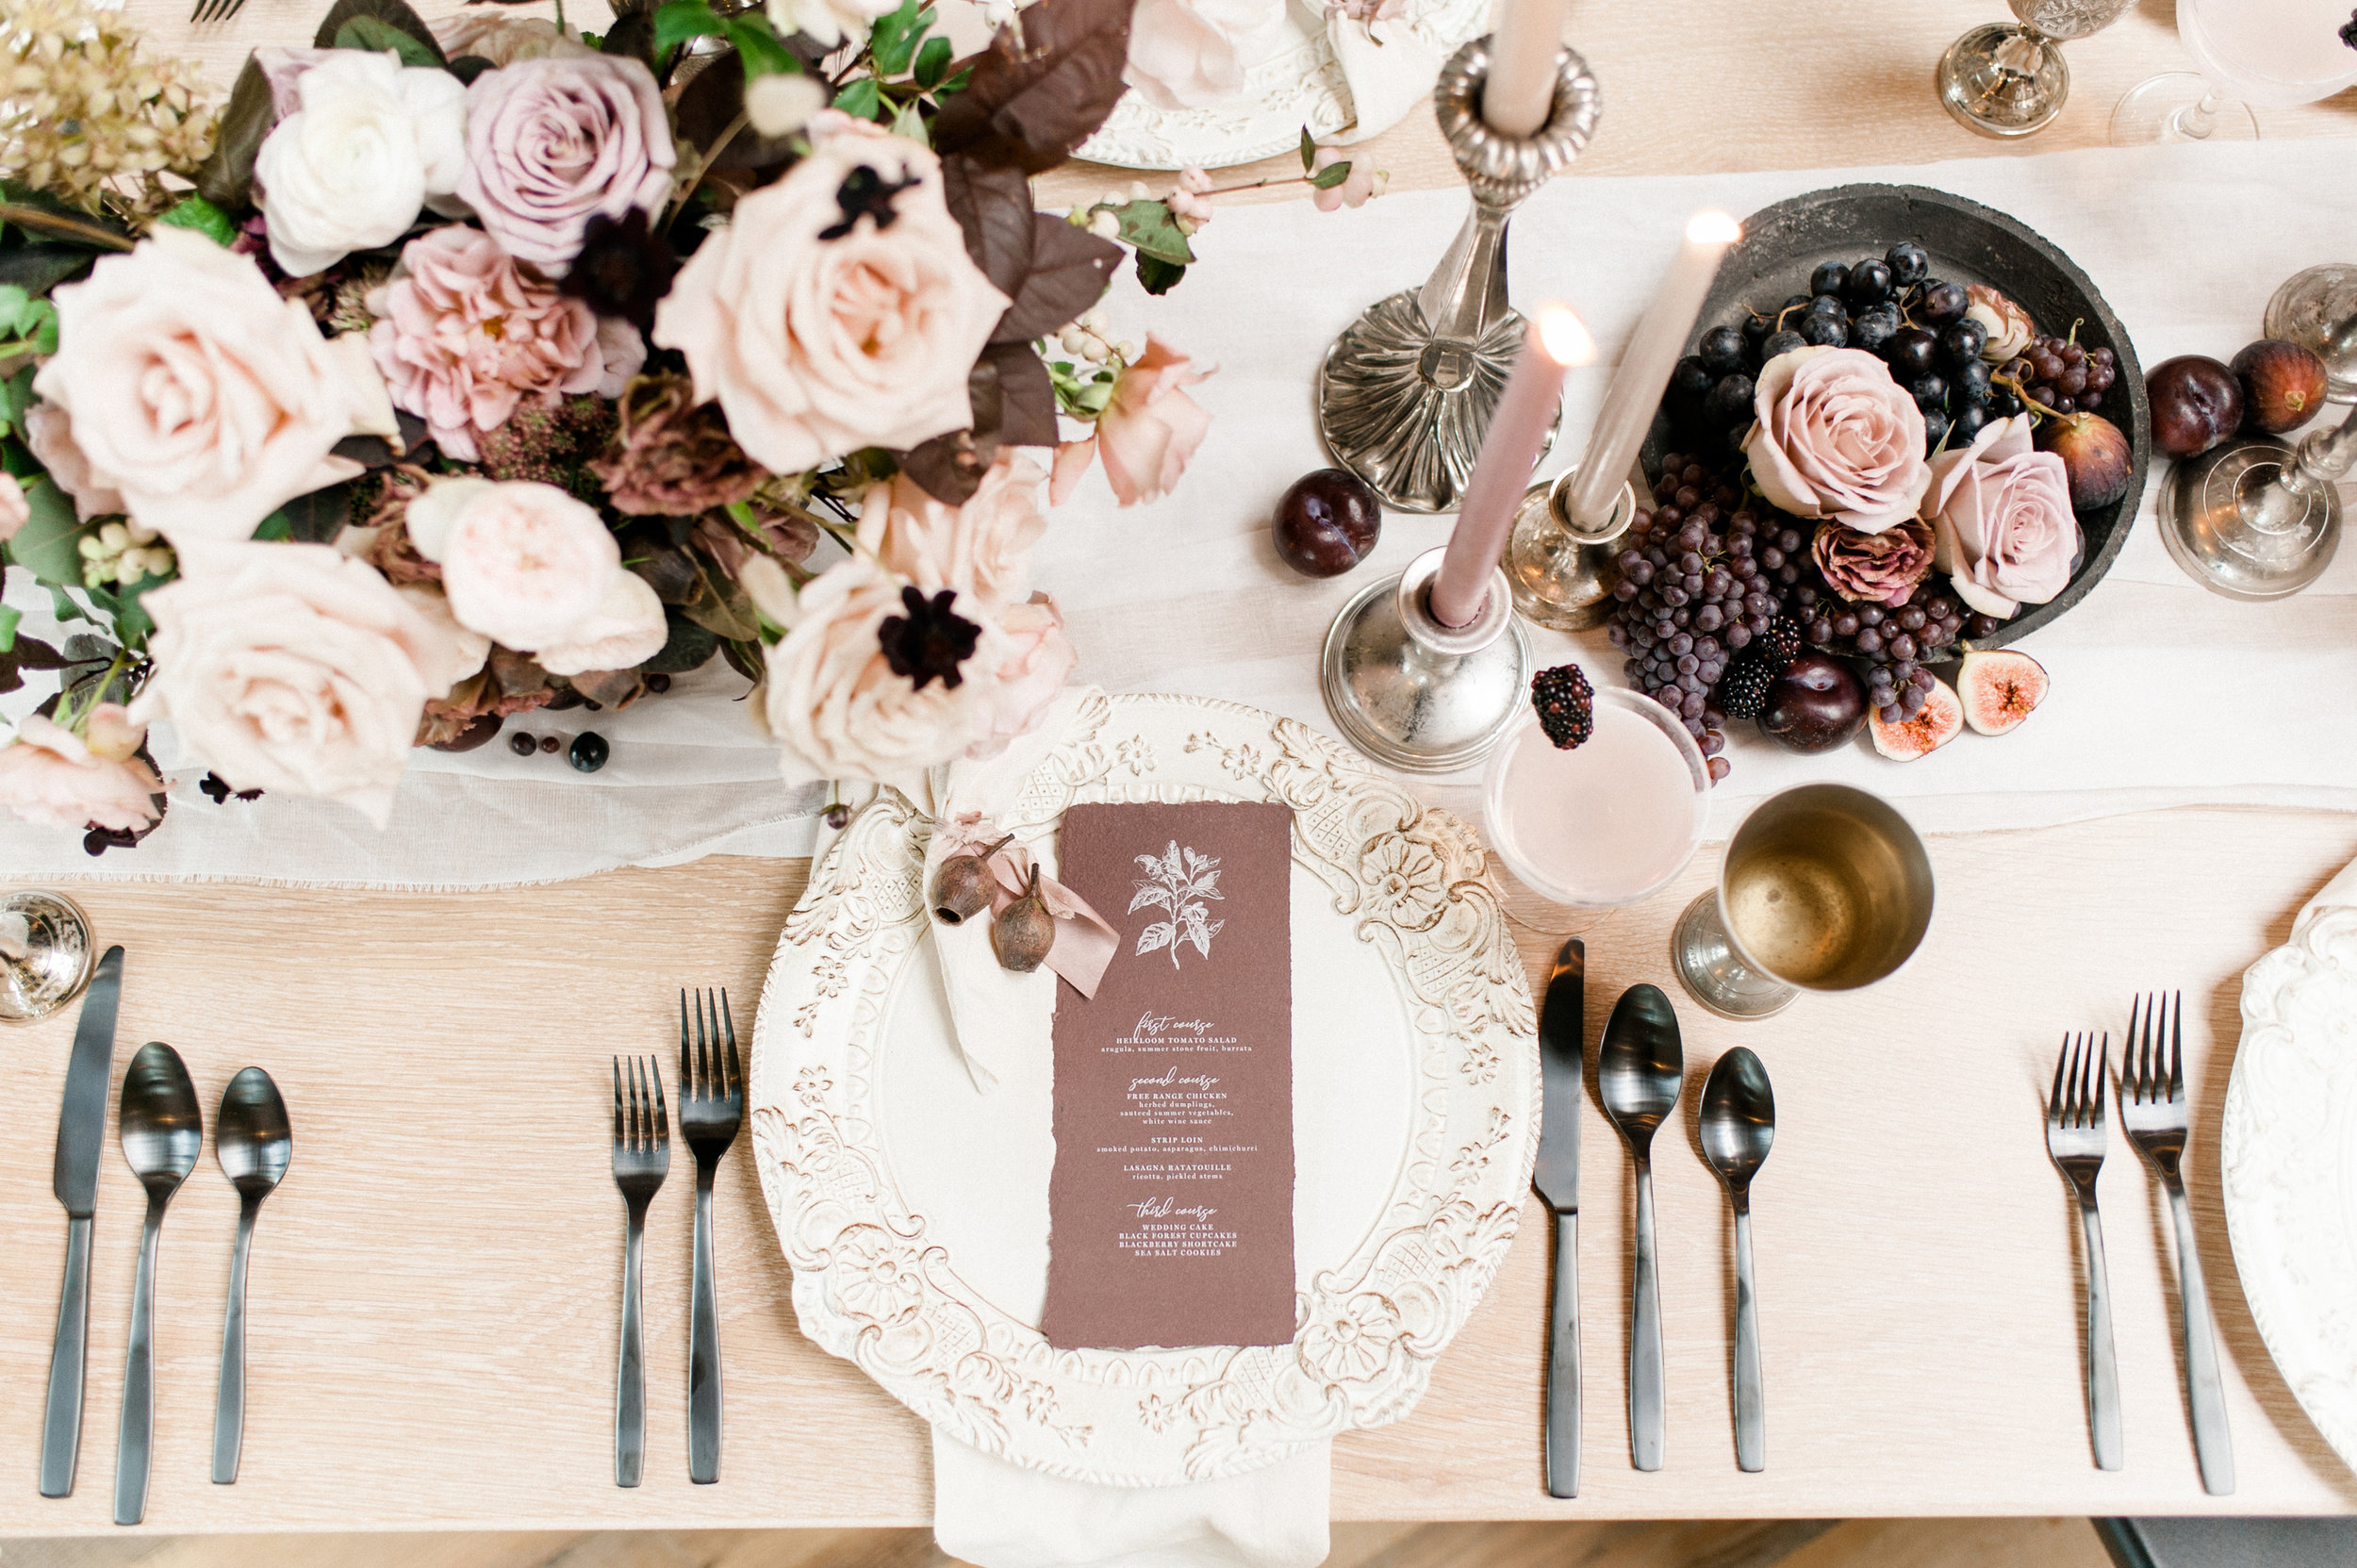 Wedding planners in PA